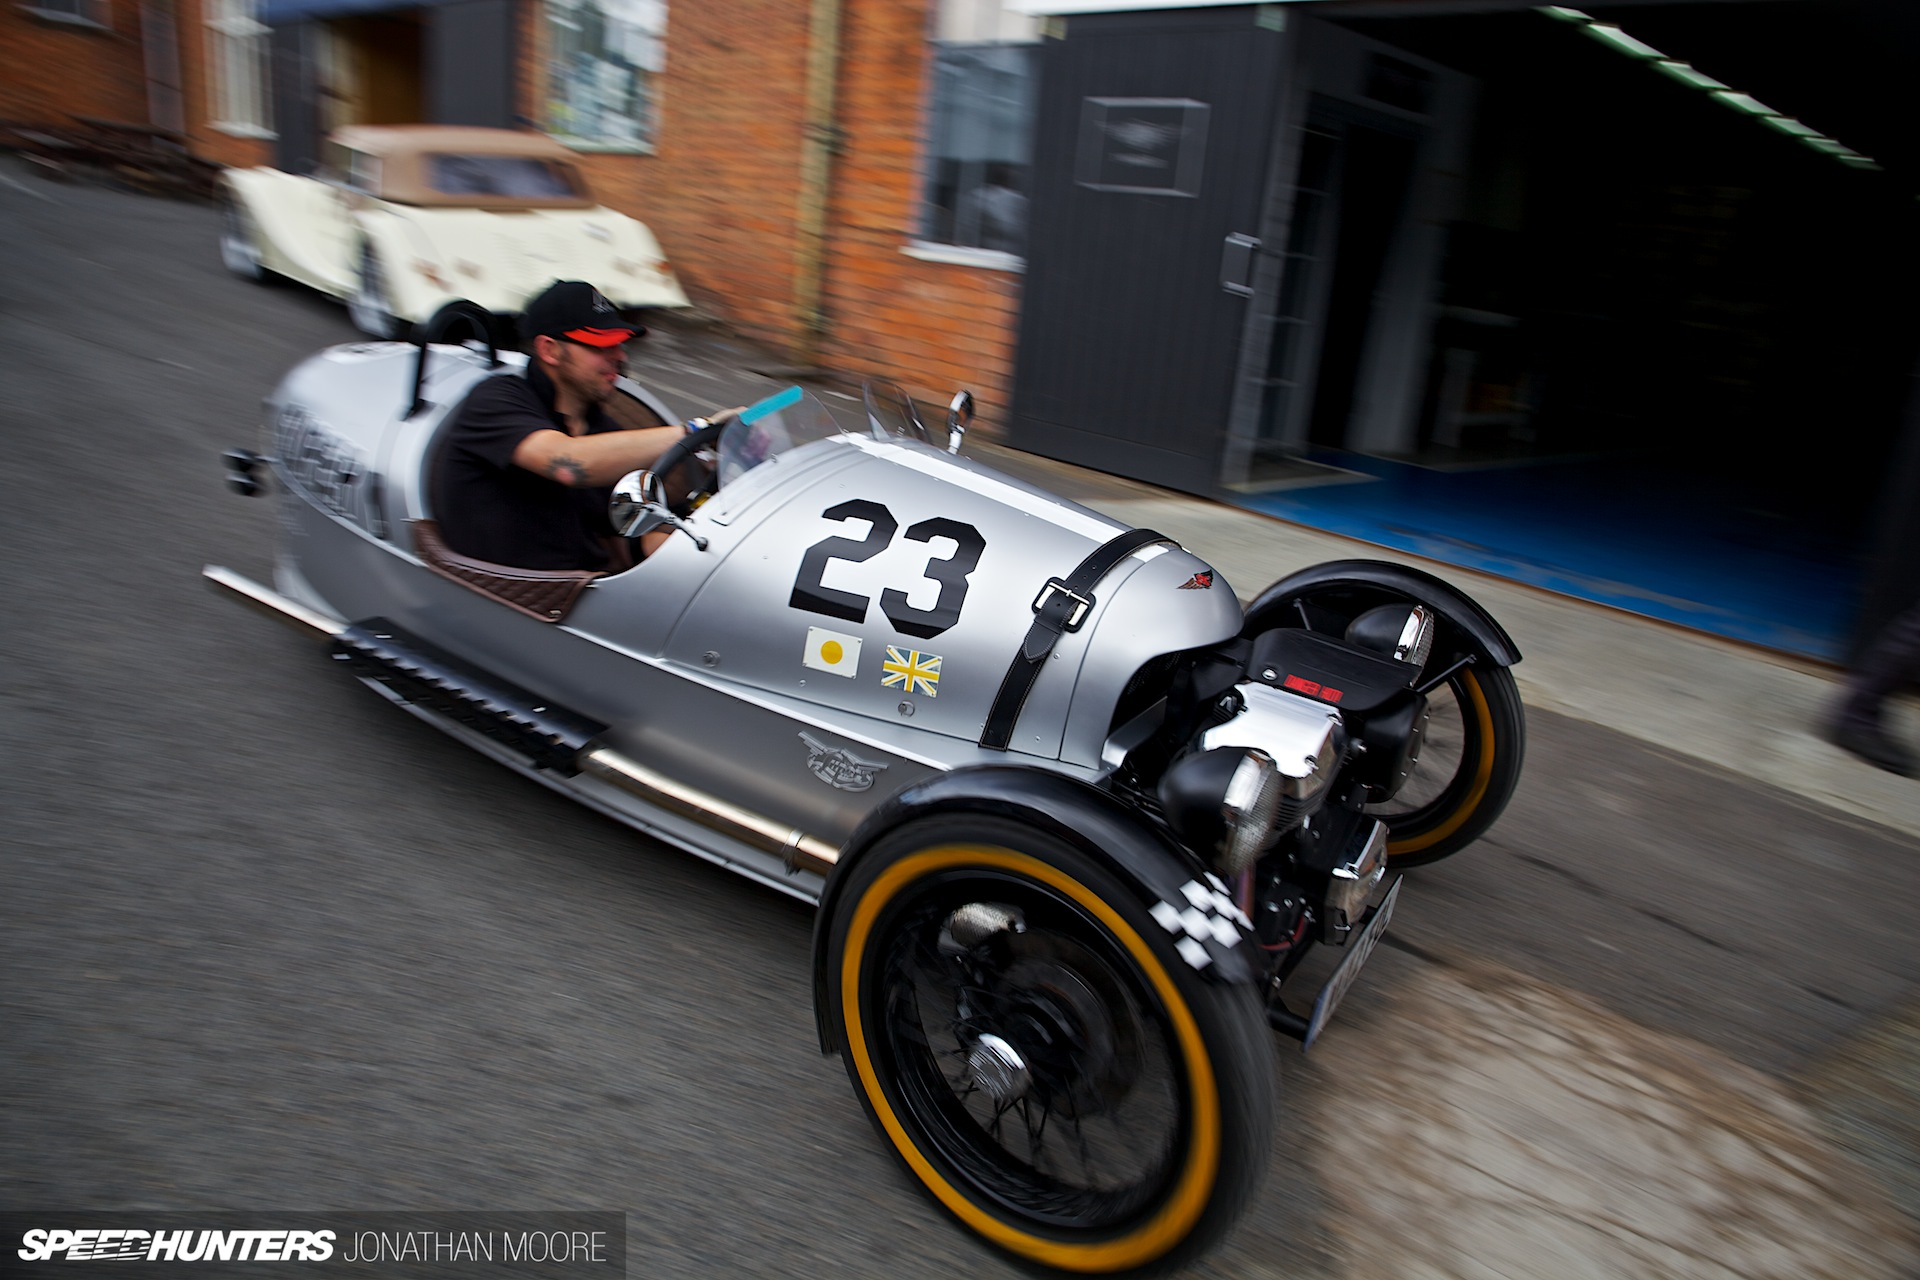 Making A Morgan: If You Could, You Wood Too - Speedhunters